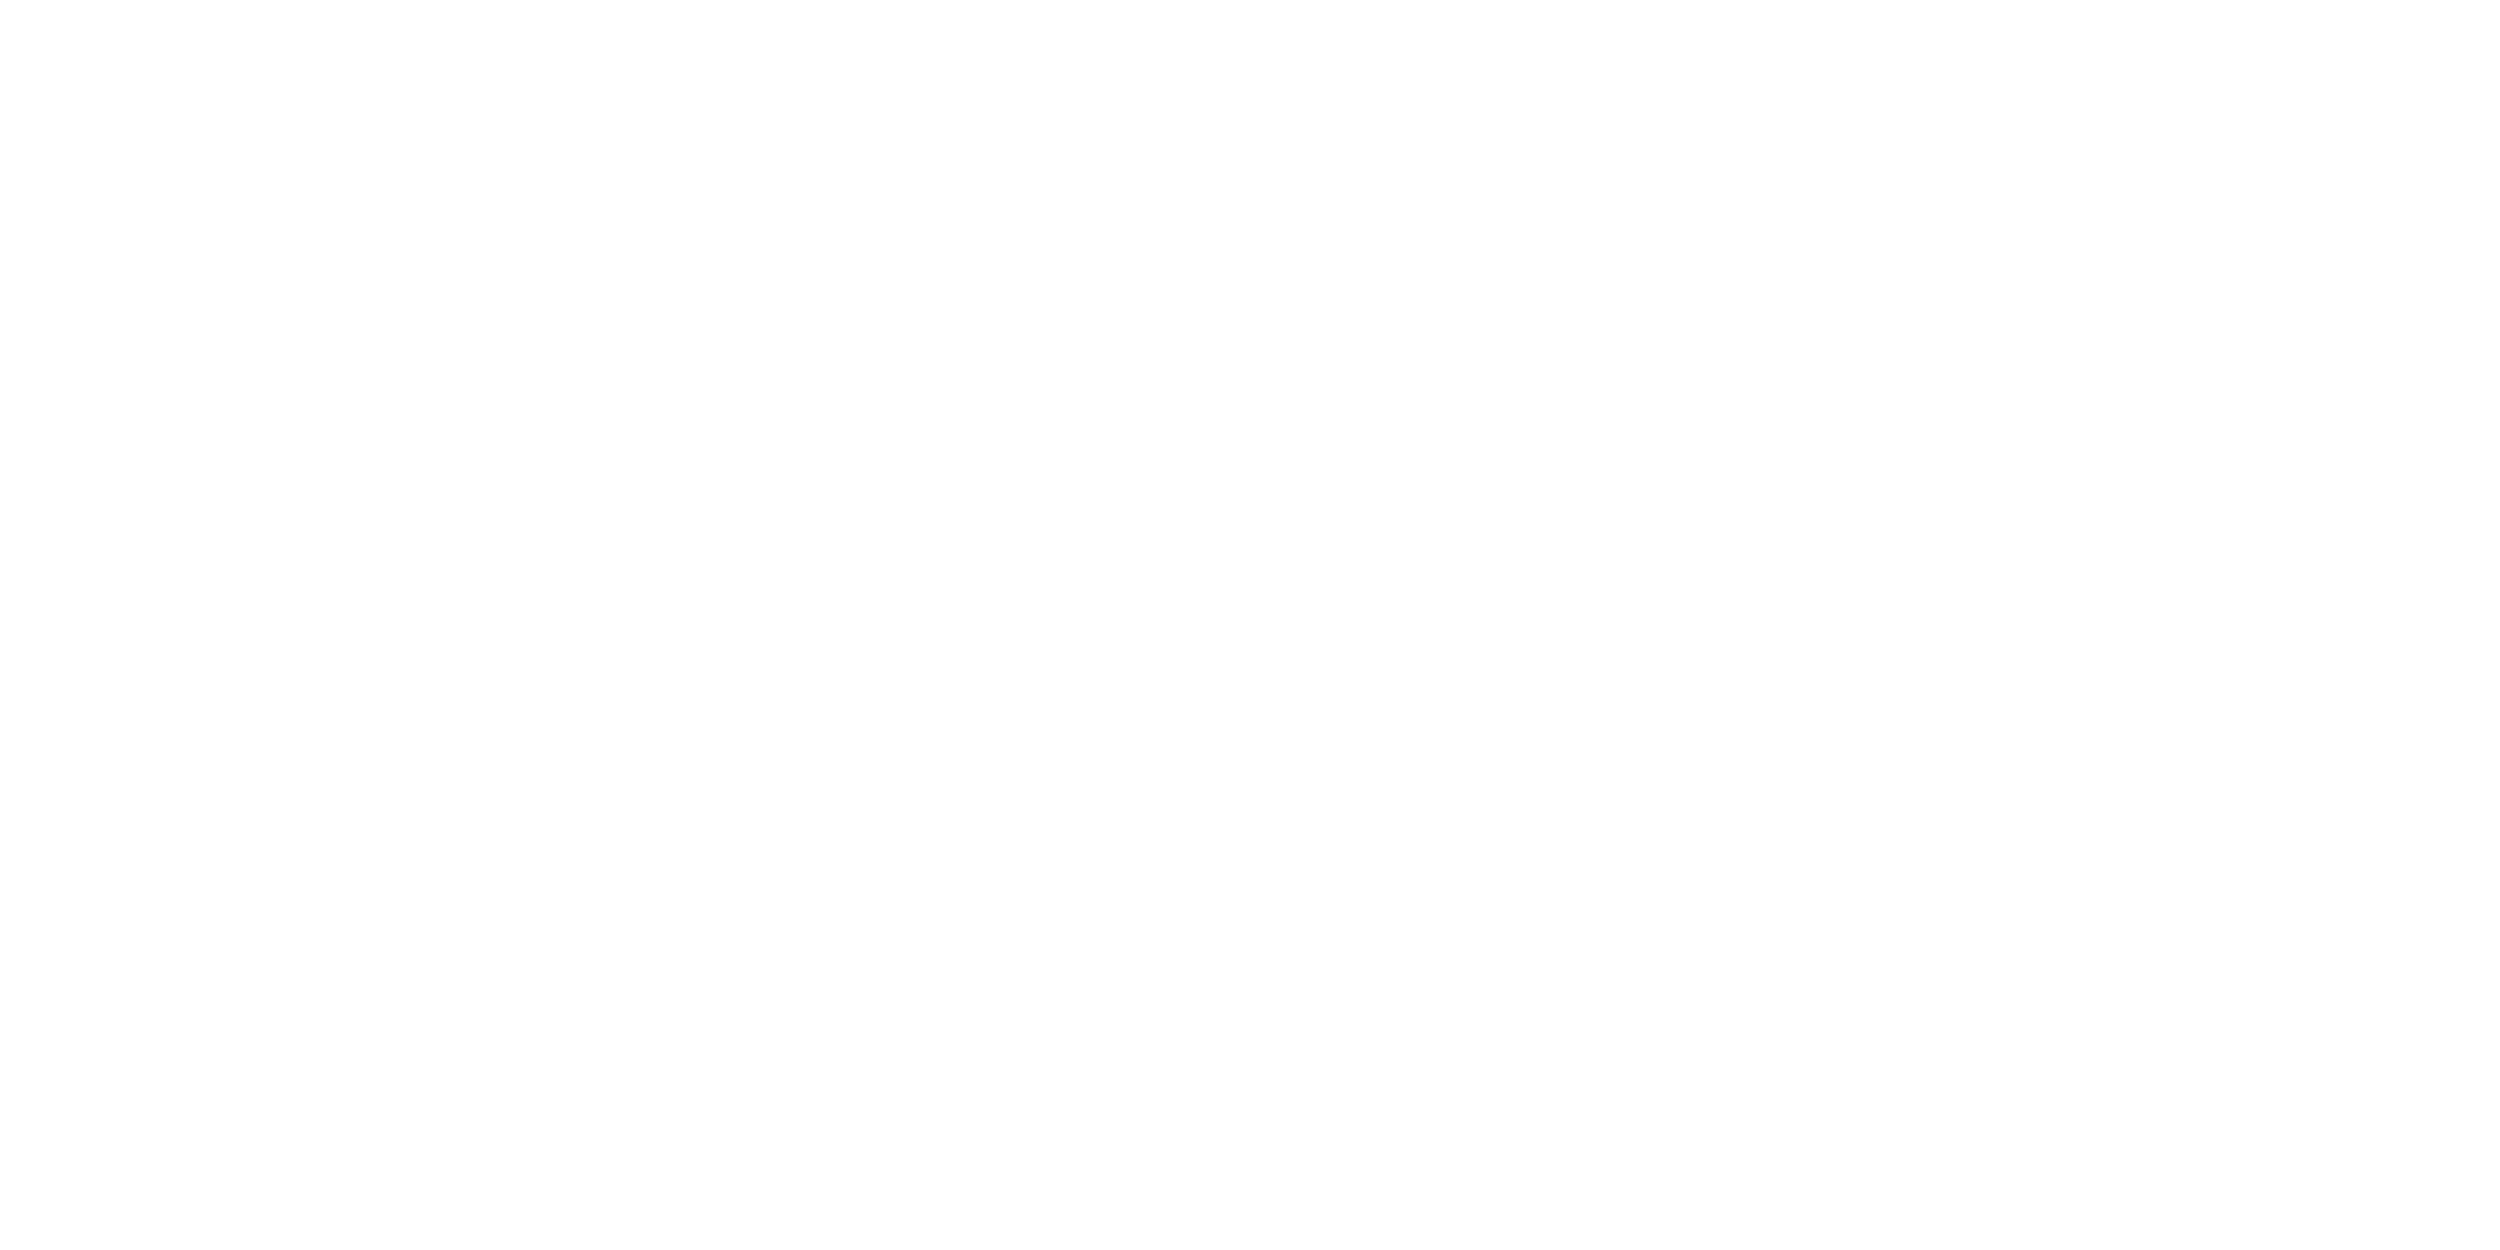 Woohoo! We're super excited to say that Home Education is an official selection at the 41st  Atlanta Film Festival  where we are one of 116 shorts selected from over 6000 submissions!  The festival is Oscar qualifying, so if we win we will be long listed for an Oscar!  The festival runs from the 24th of March to the 2nd of April in various locations in Atlanta, Georgia and we are screening on the 25th at the  7 Stages  theatre as part of the 'IN THE REALMS OF THE UNREAL' shorts block.  You will find  Andrea Niada  and Chiari Cardoso there representing the film!   http://atlantafilmfestival.com/